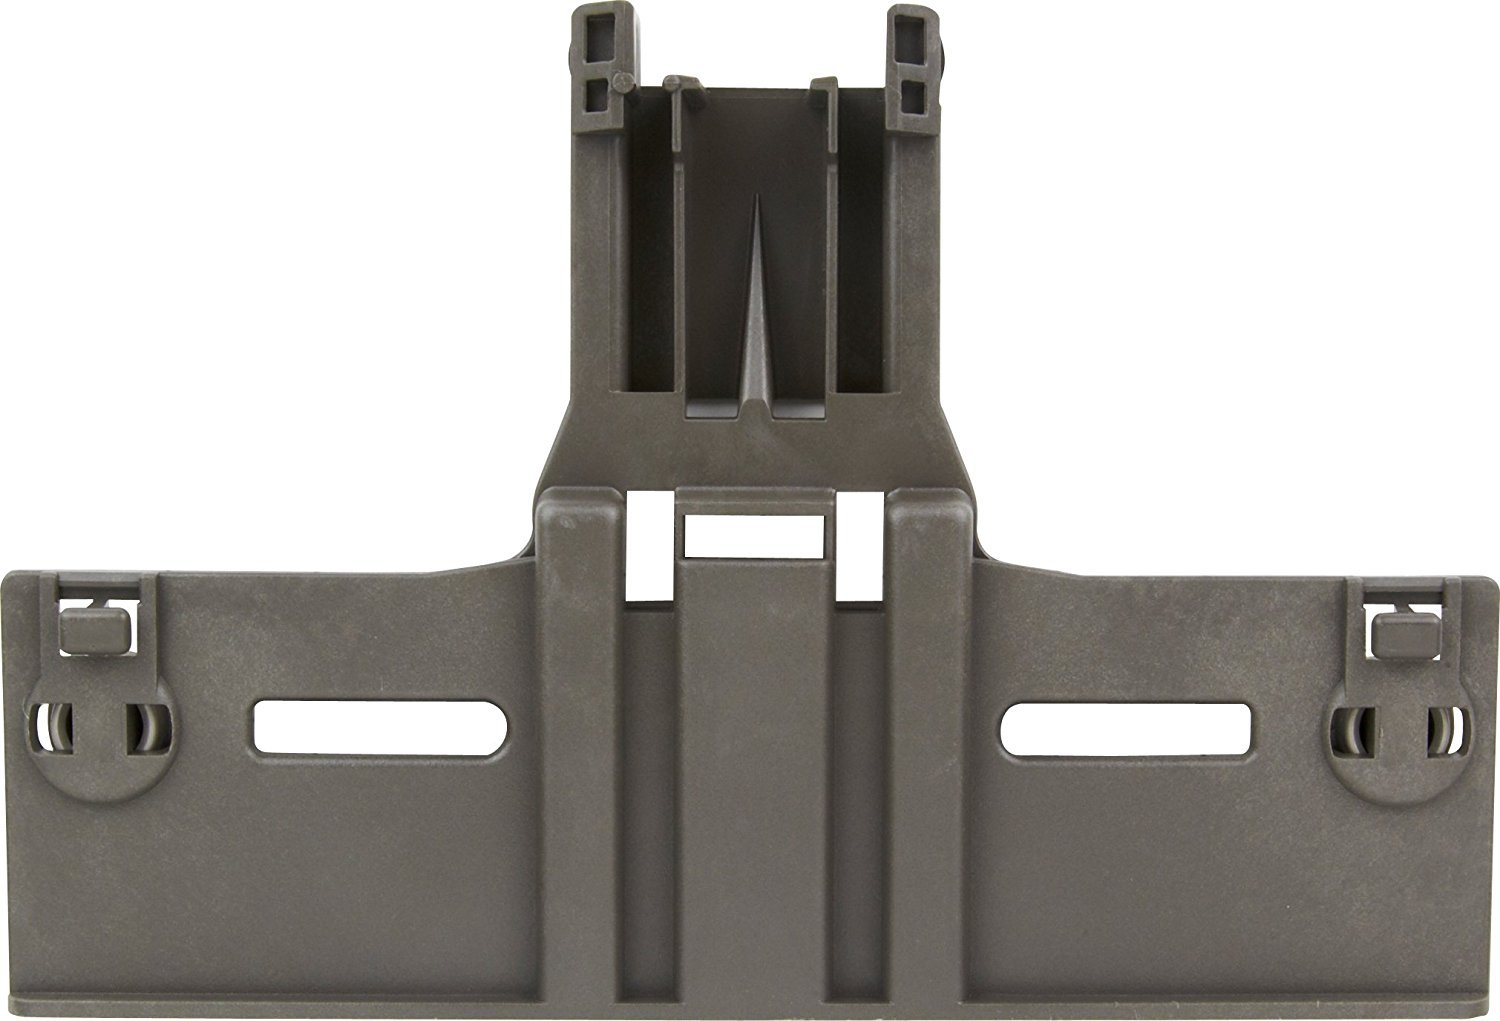 W10350376 Upper Rack Adjuster for Whirlpool KitchenAid Dishwasher - W10712394